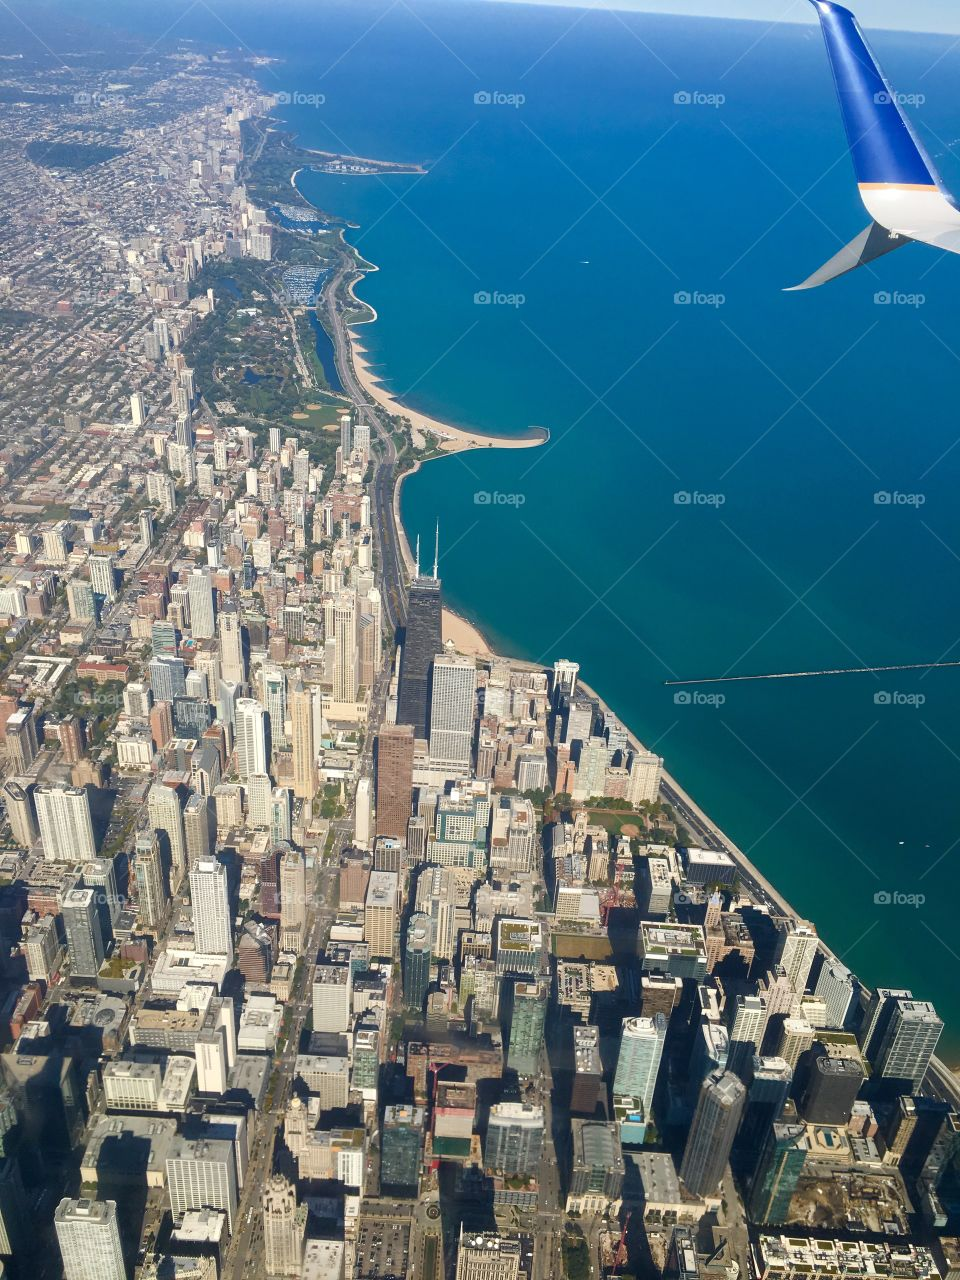 About to land in Chicago and had to snap this shot!